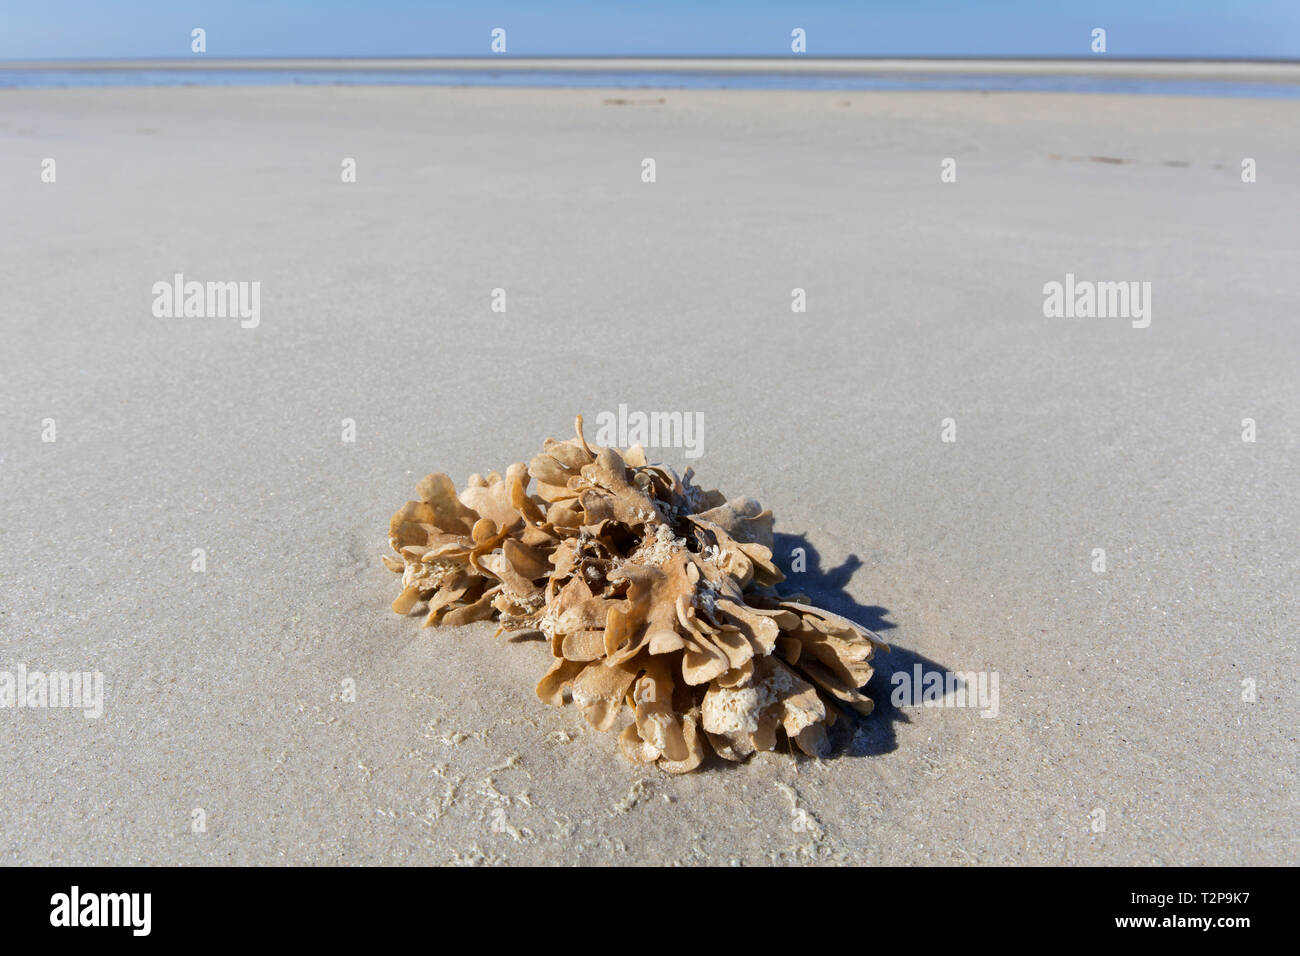 Flustra foliacea / Eschara foliacea, species of bryozoans, colonial animal found in the northern Atlantic Ocean washed ashore on tidal mudflat Stock Photo